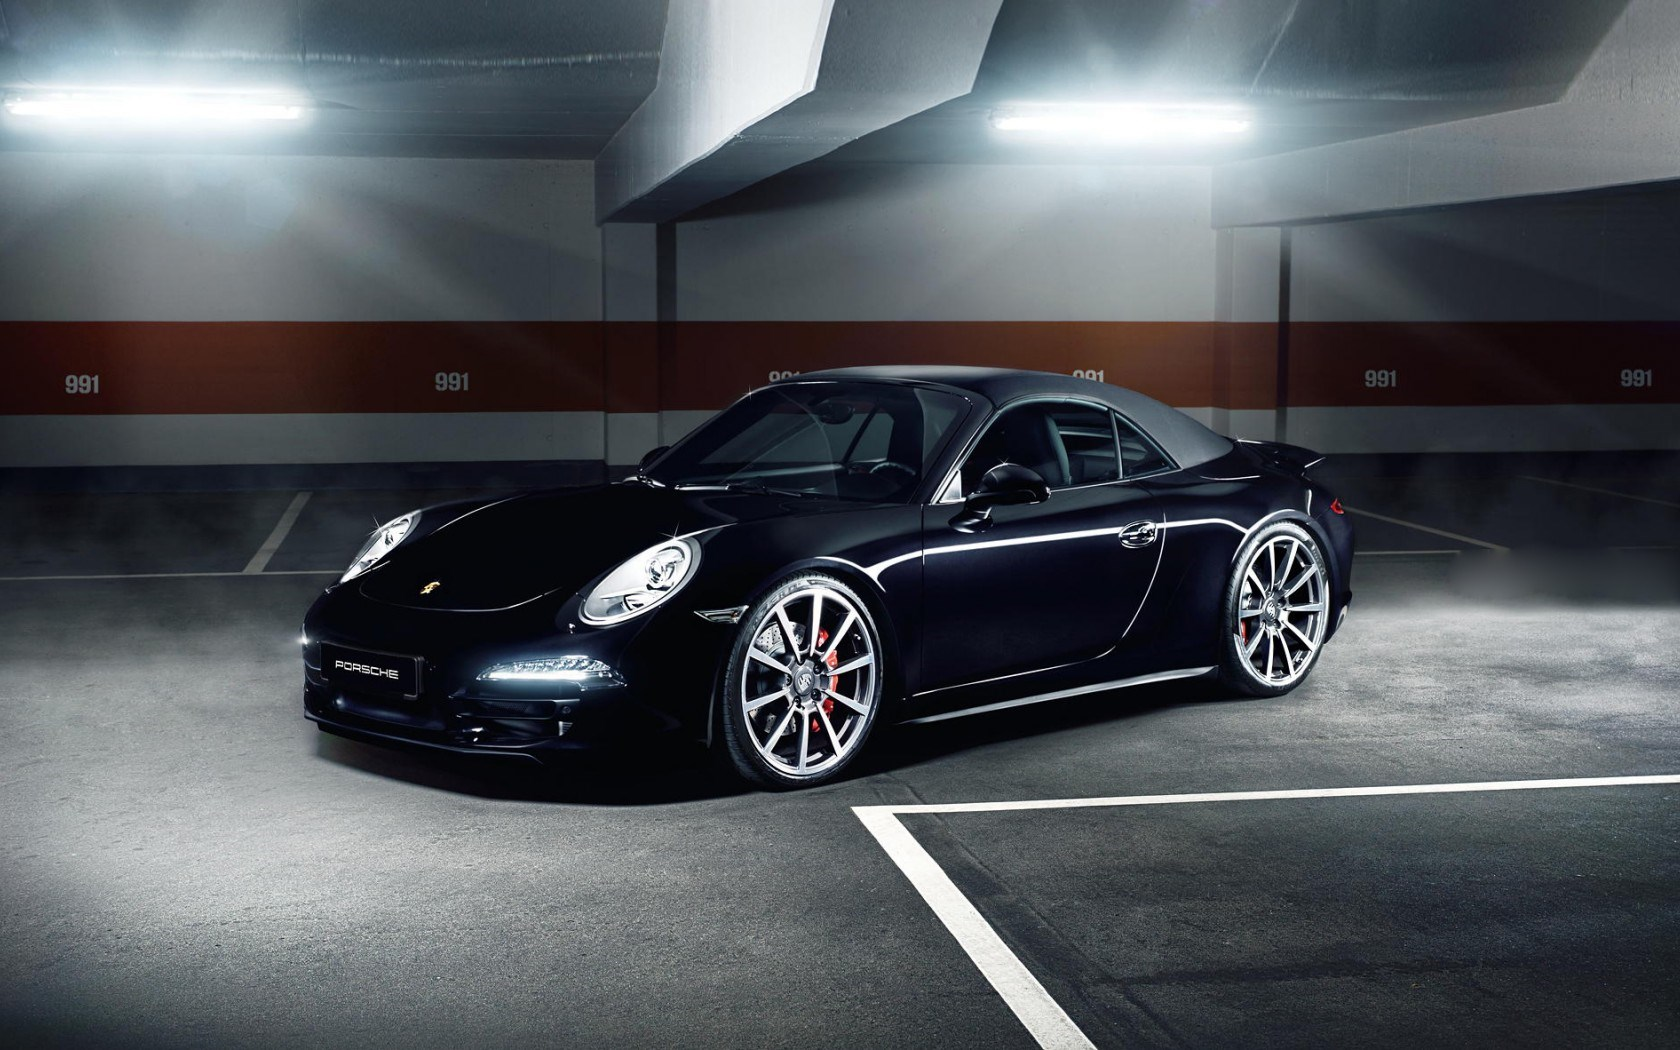 porsche 991 carrera car wheels tuning wallpaper. Black Bedroom Furniture Sets. Home Design Ideas